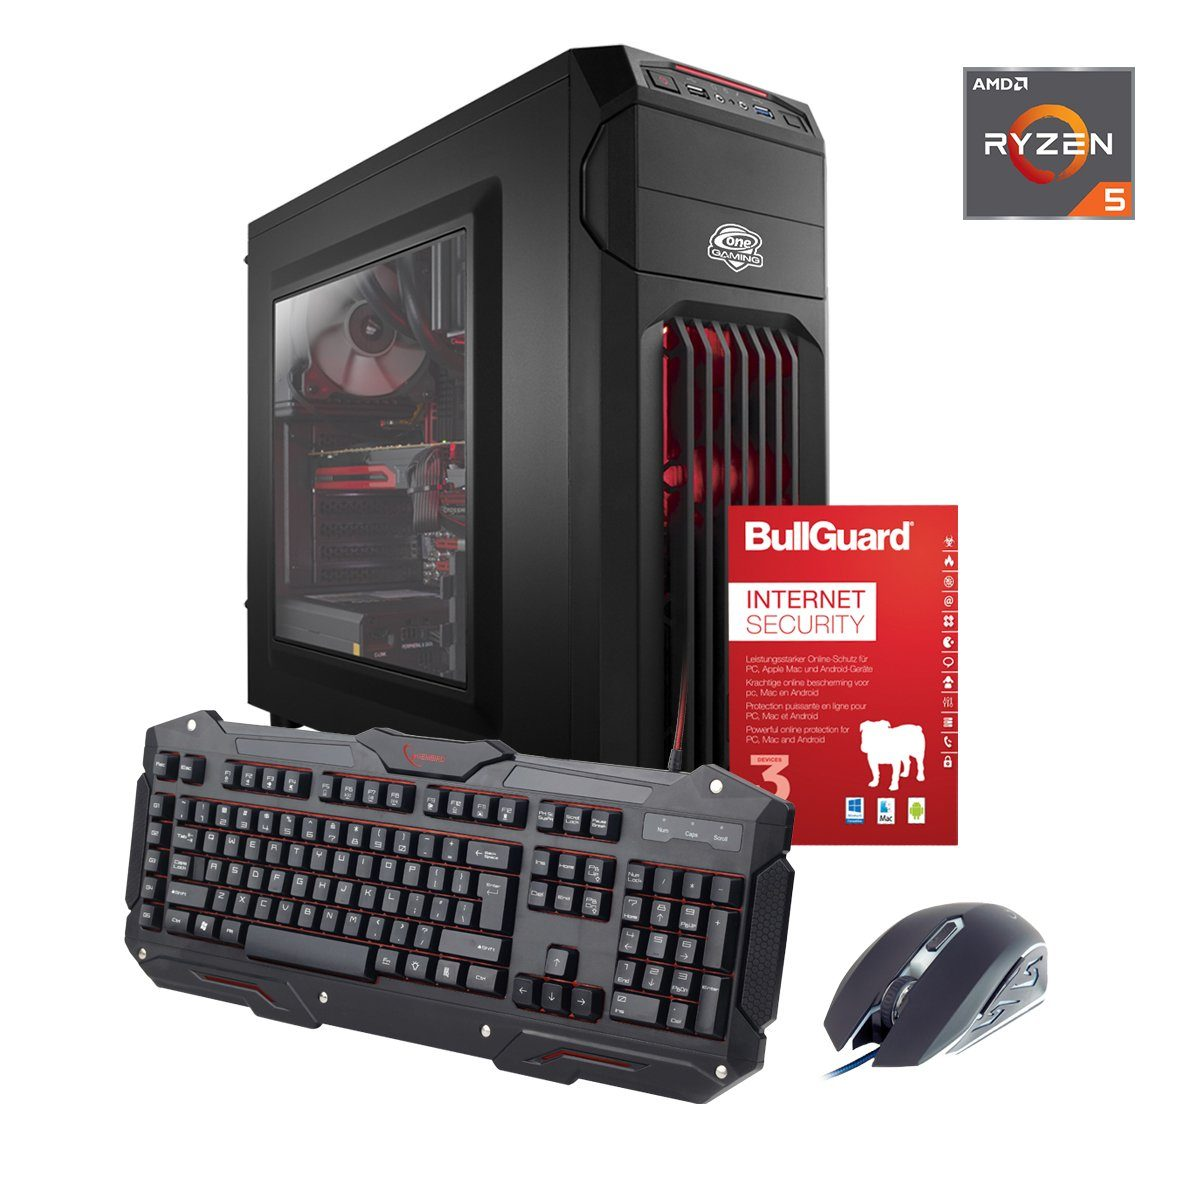 ONE GAMING PC, Ryzen 5 1500X, GeForce GTX 1060, 8GB DDR4 RAM »PC 44541«